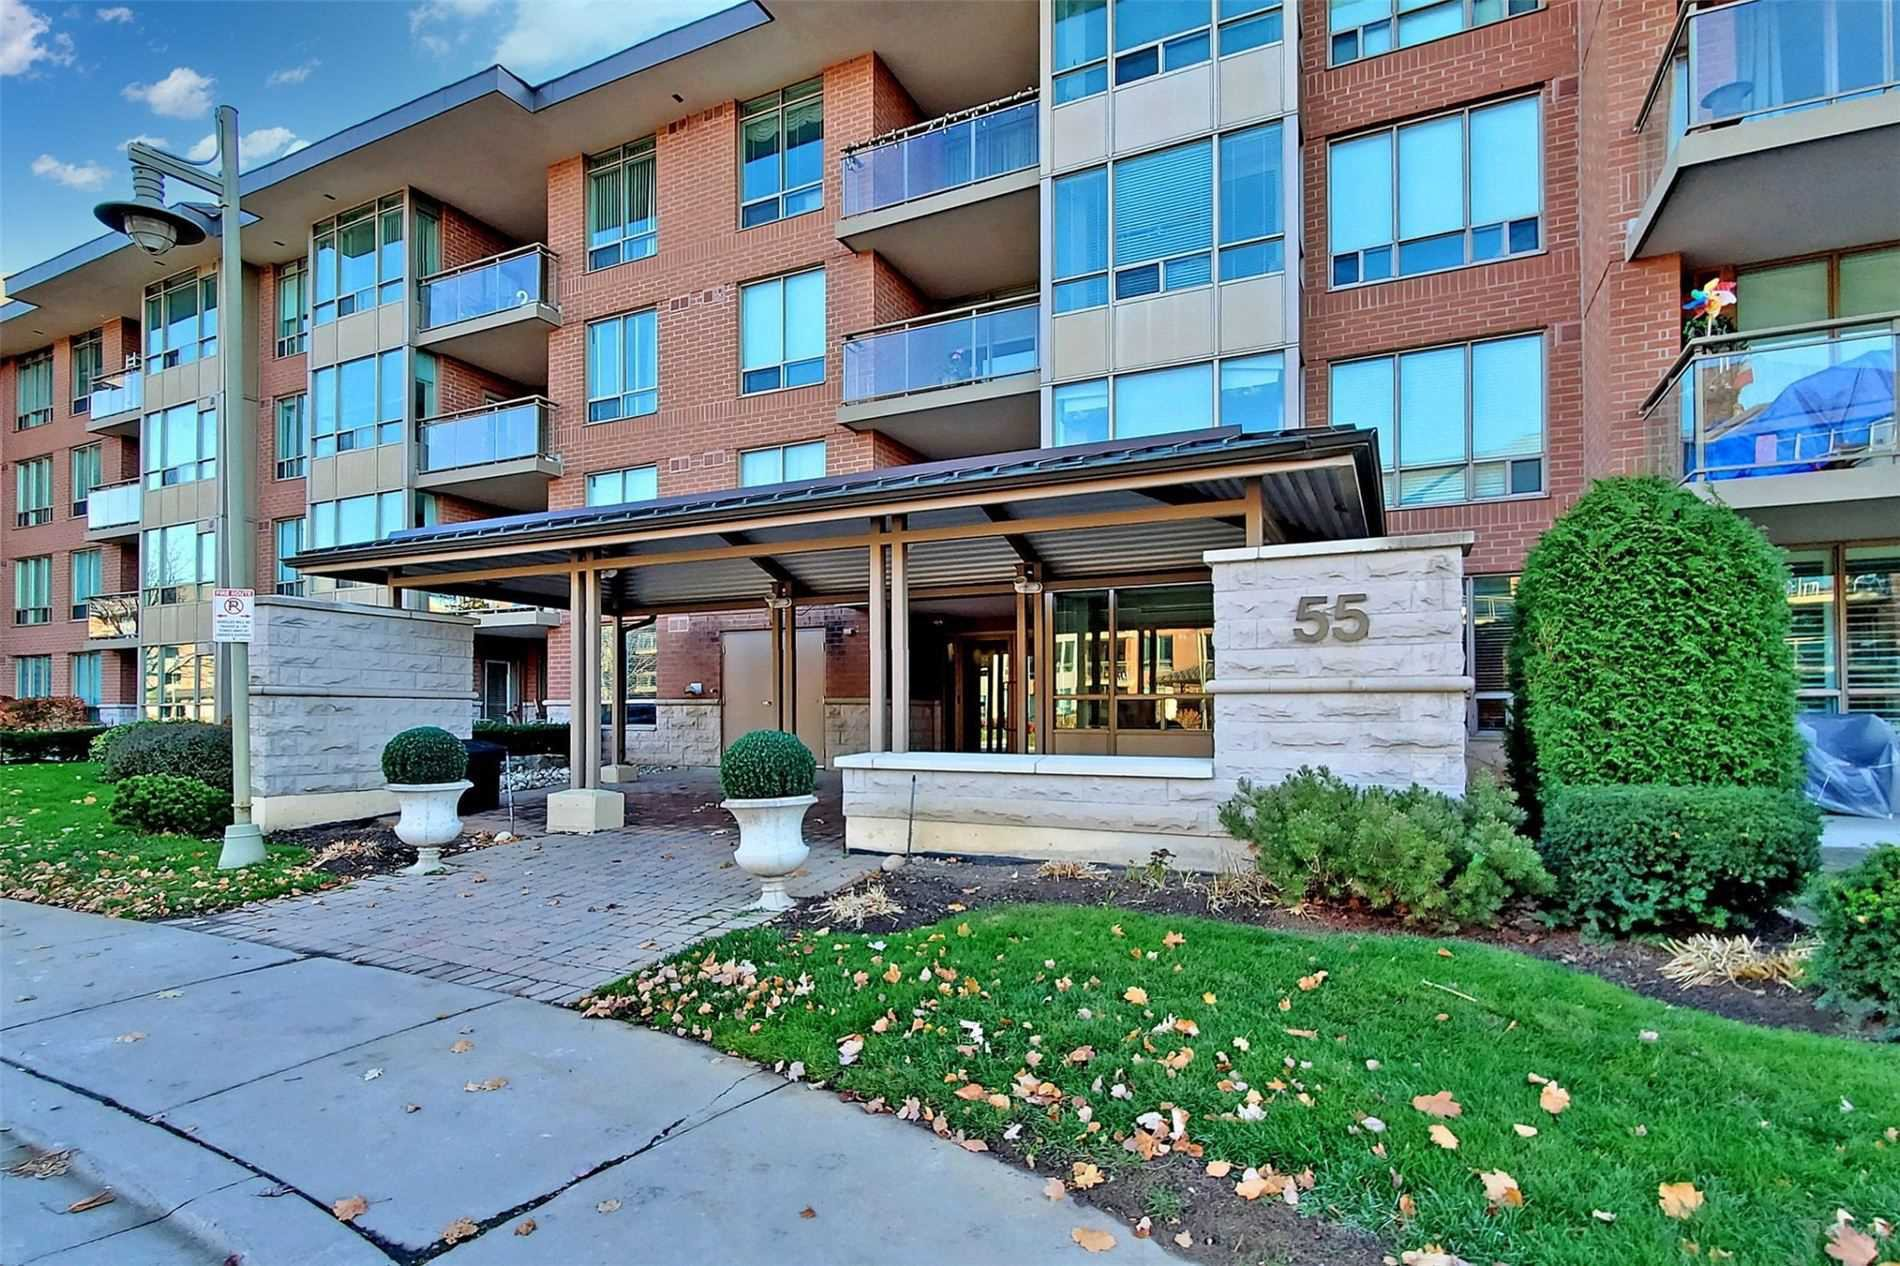 Main Photo: 310 55 The Boardwalk Way in Markham: Greensborough Condo for sale : MLS®# N4979783